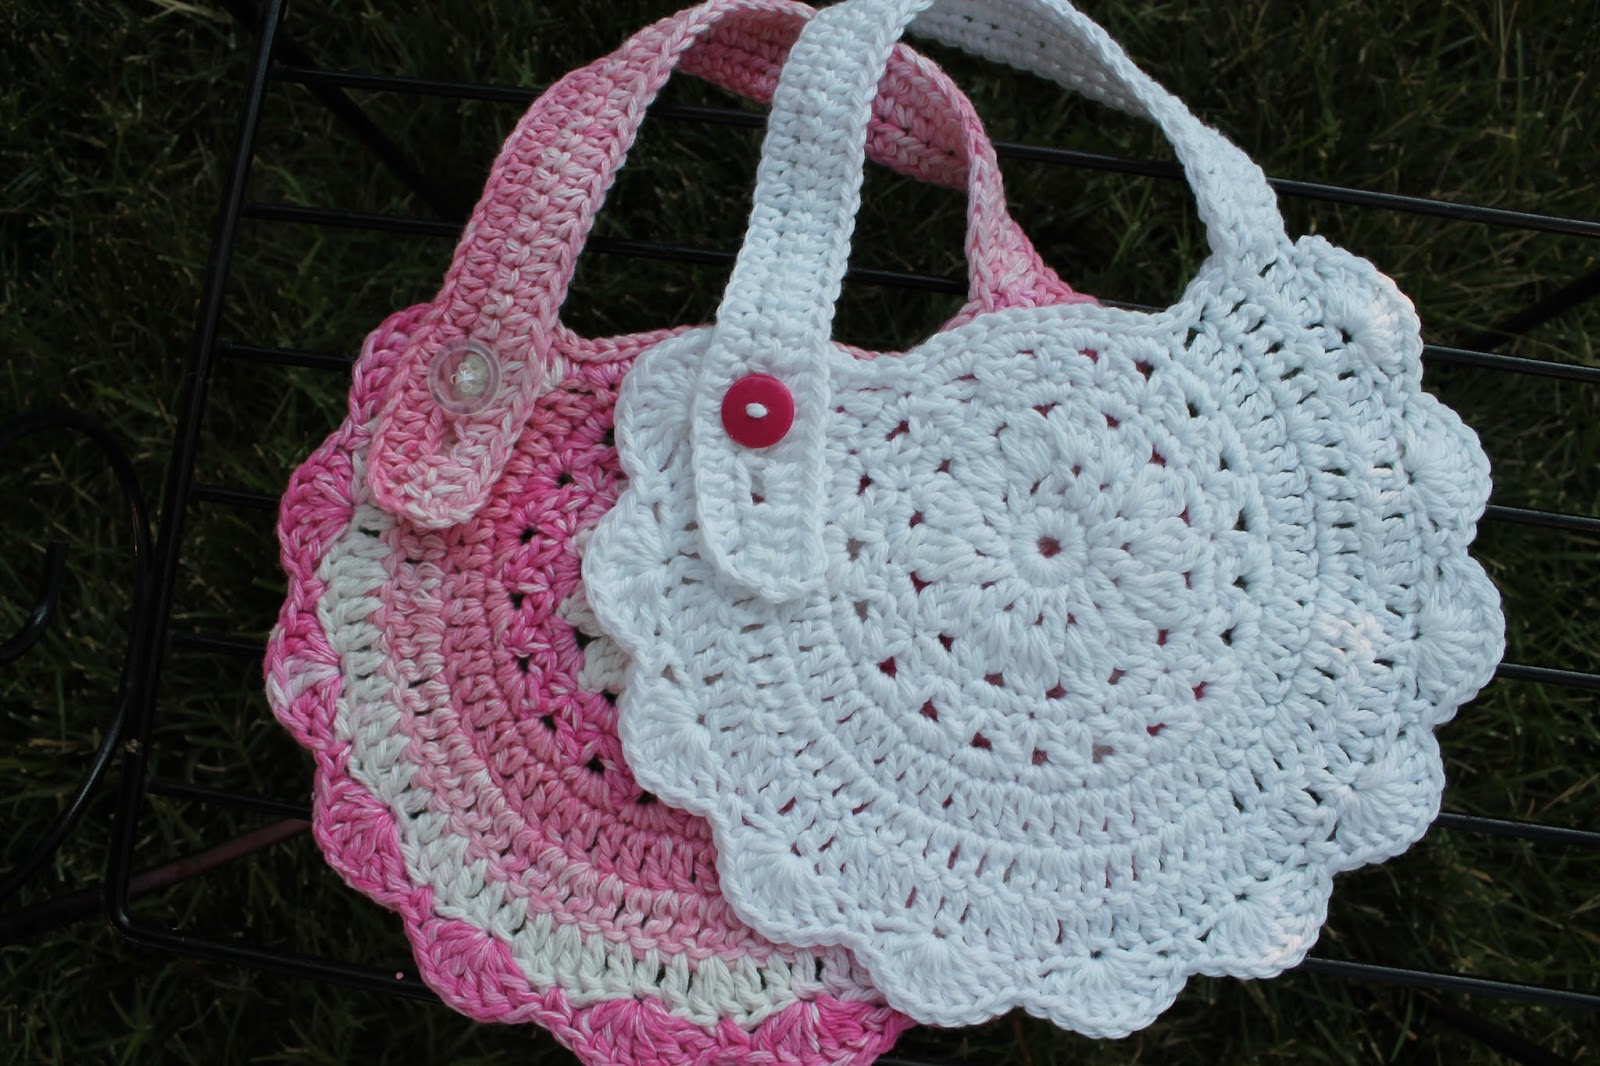 Crochet Baby Bib Patterns : Mi Casa: Crochet Baby Bibs